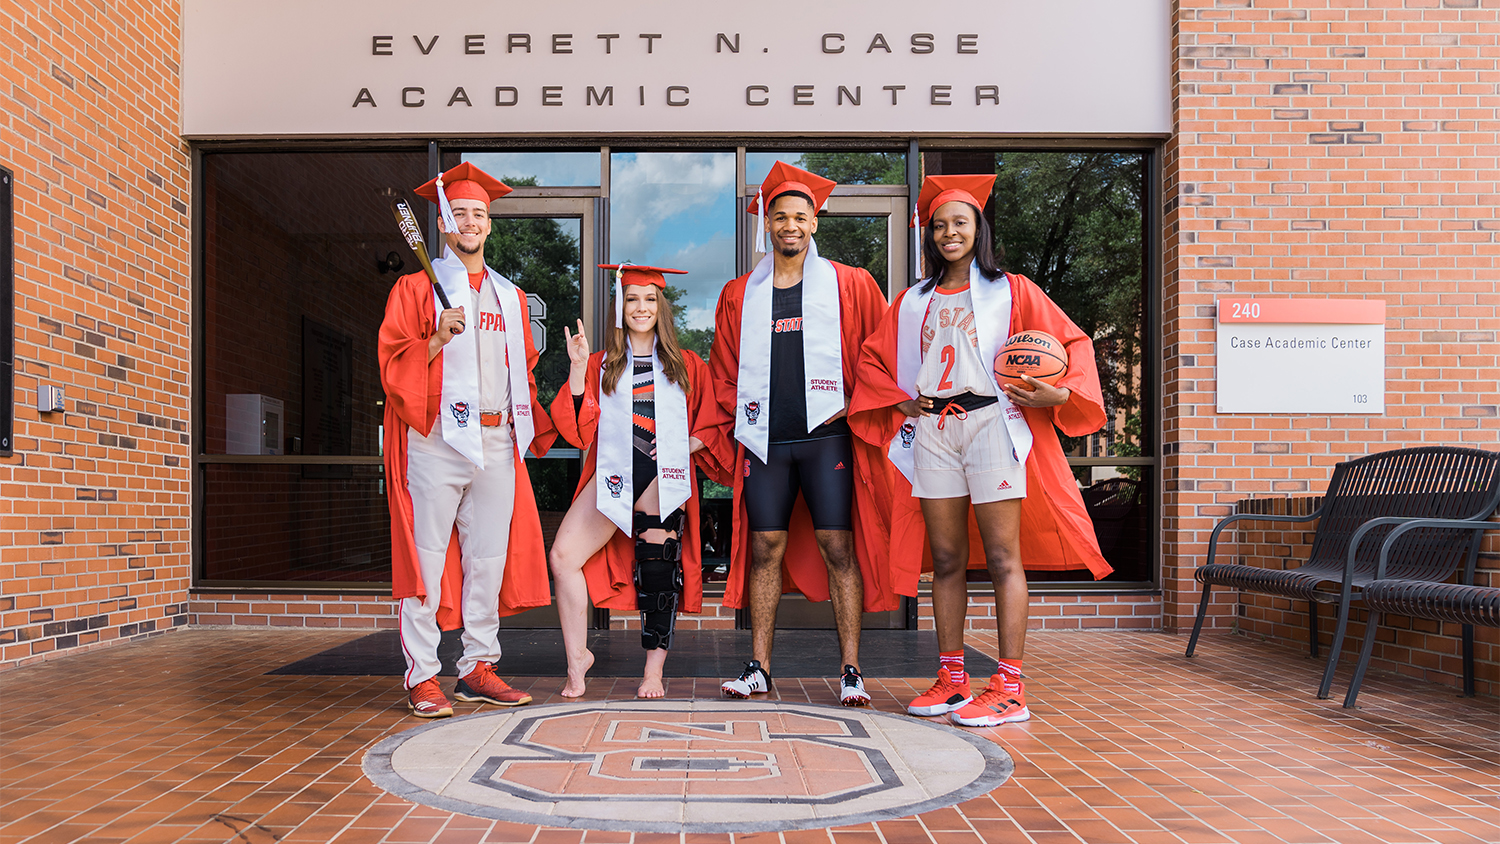 A group of four student-athletes outside the Everett N. Case Academic Center